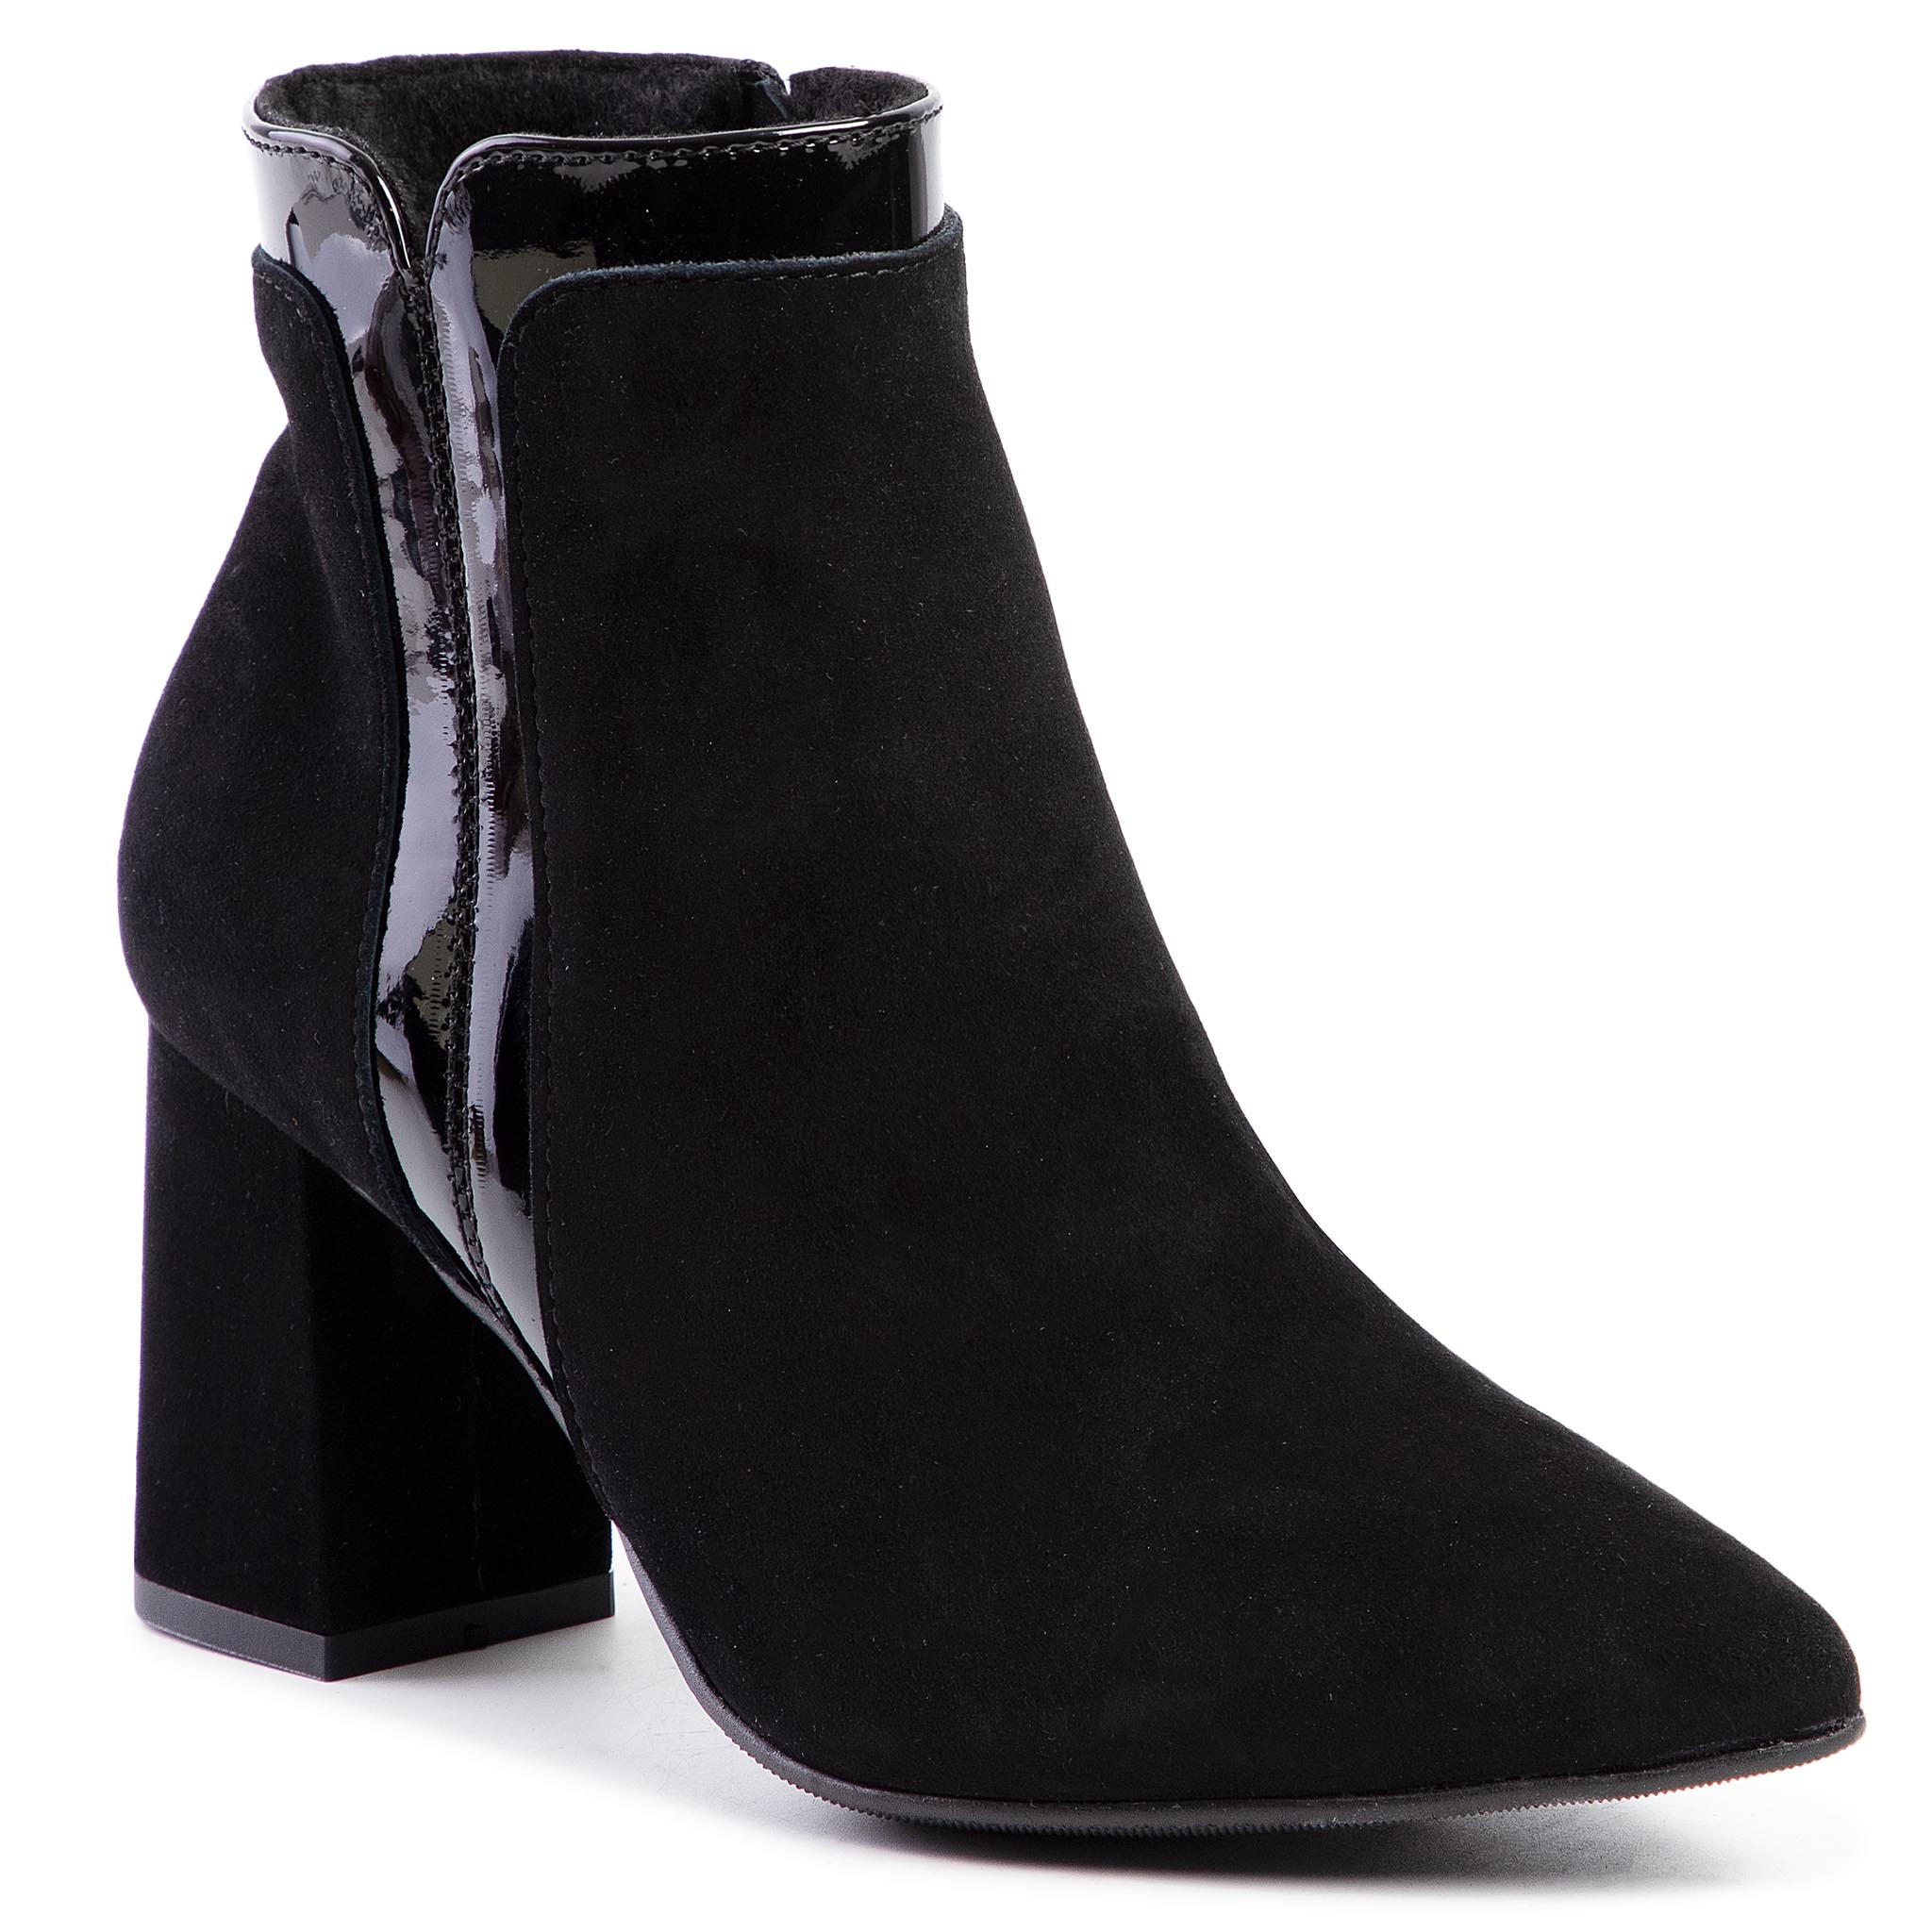 Bottines SAGAN - 3856 Czarny Welur